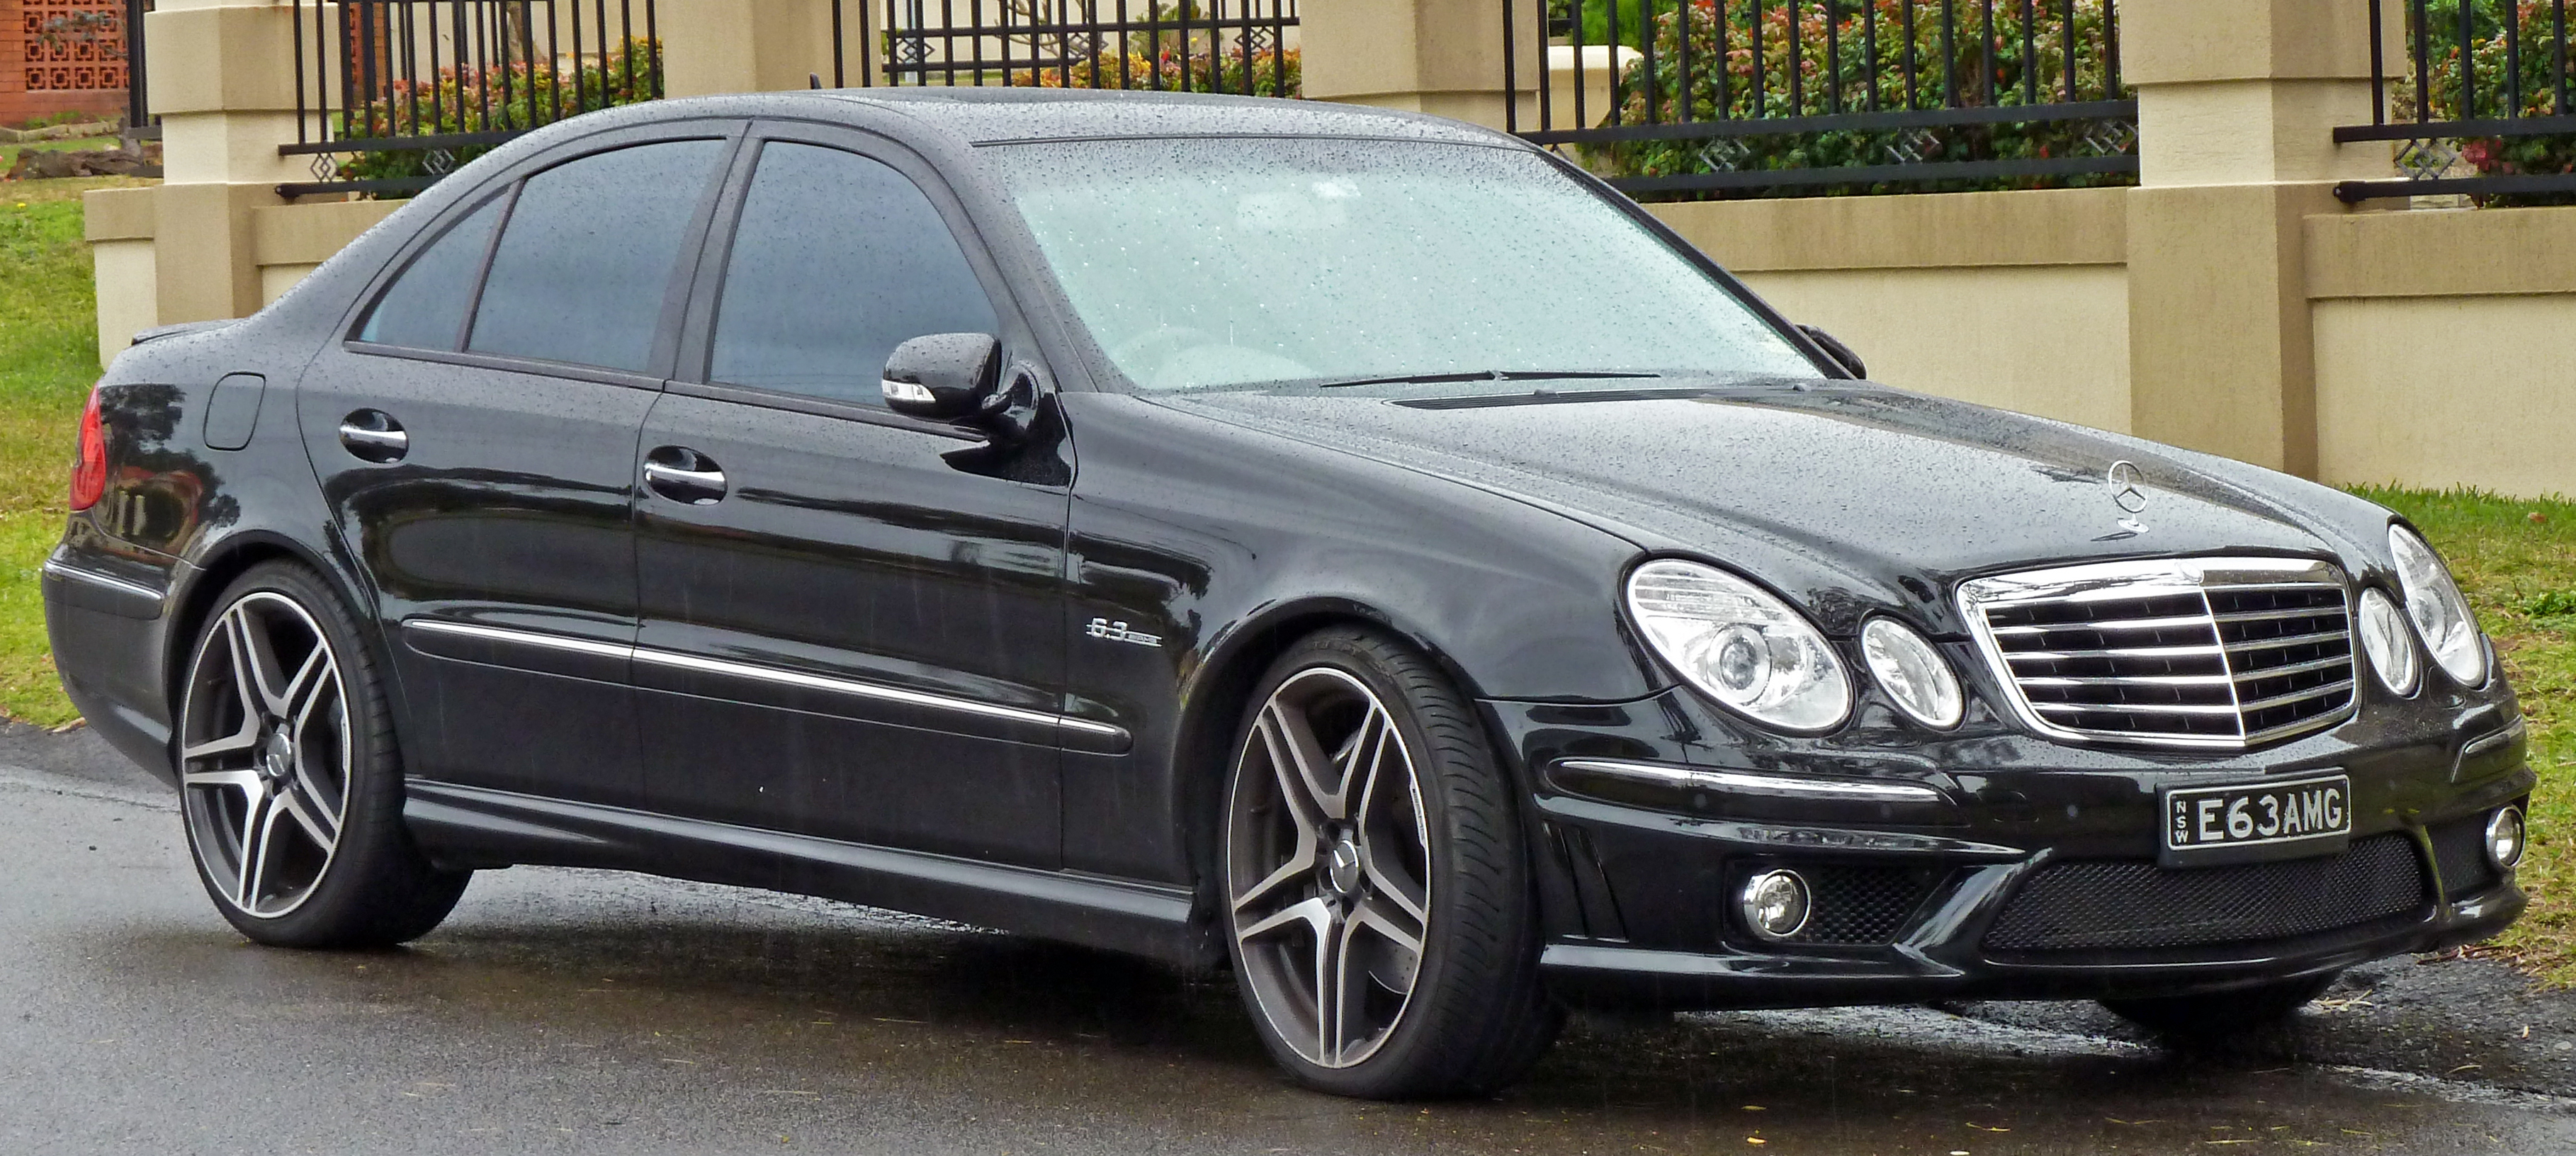 File:2006-2009 Mercedes-Benz E 63 AMG (W211) sedan 01.jpg ...